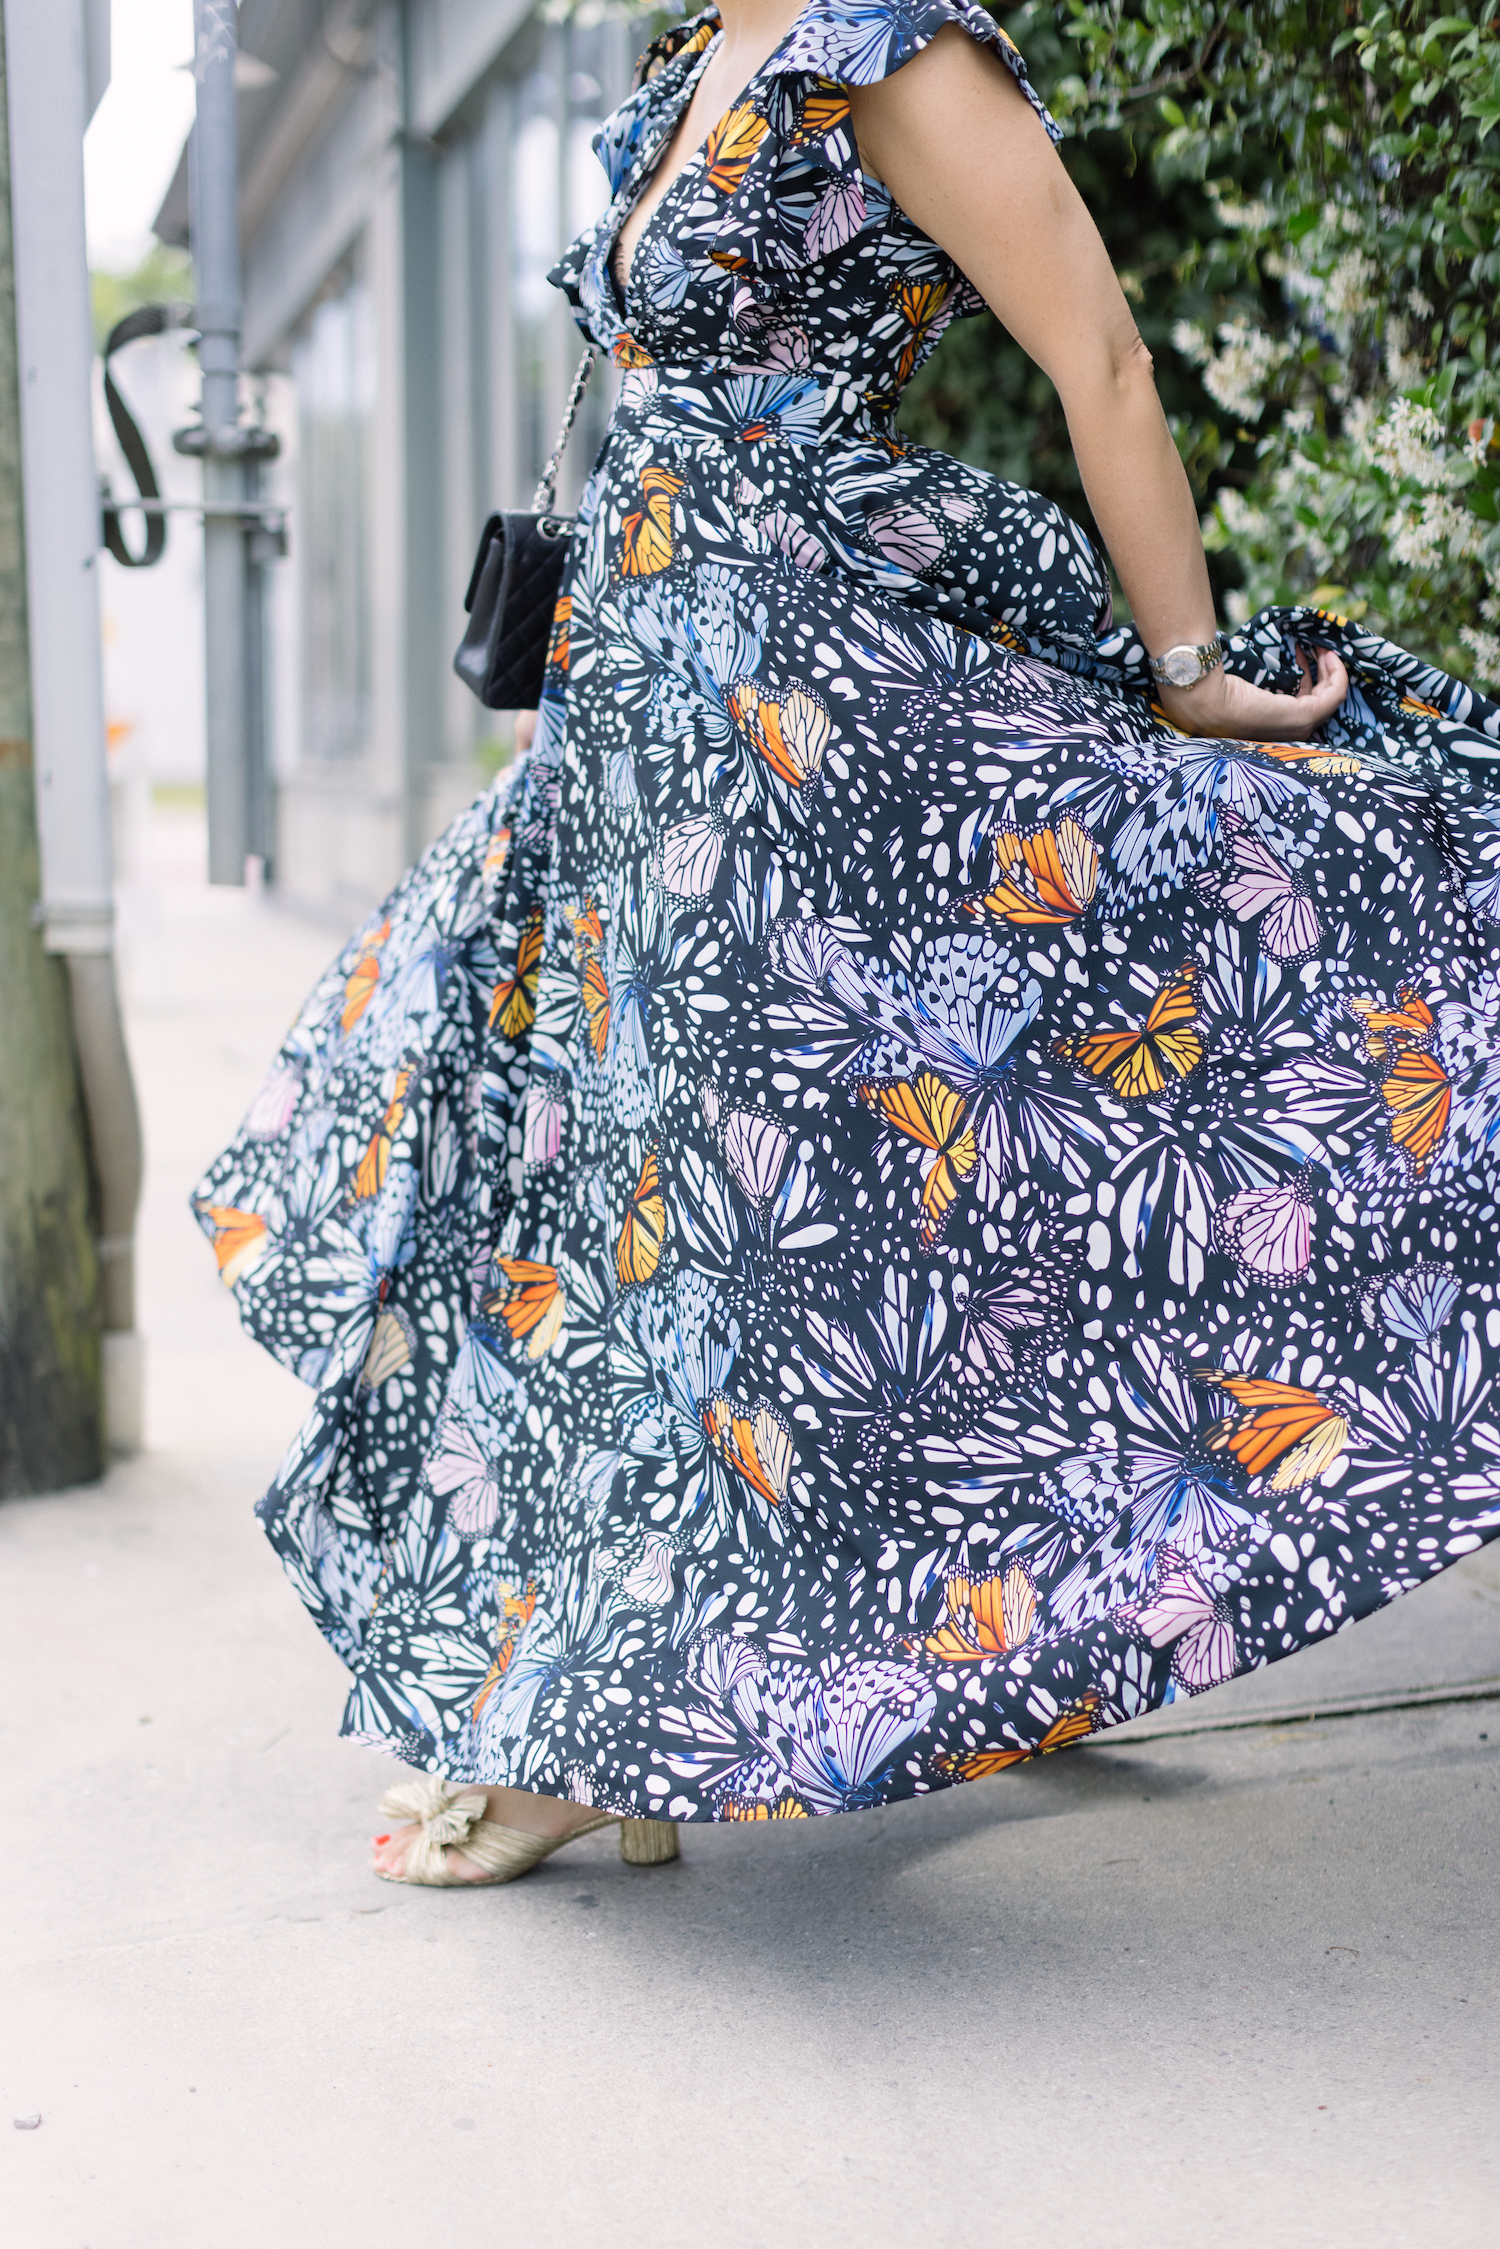 Butterfly Print Maxi Dress   A Hilarious TV Show, A New Jewelry Find, and Other Good Things.